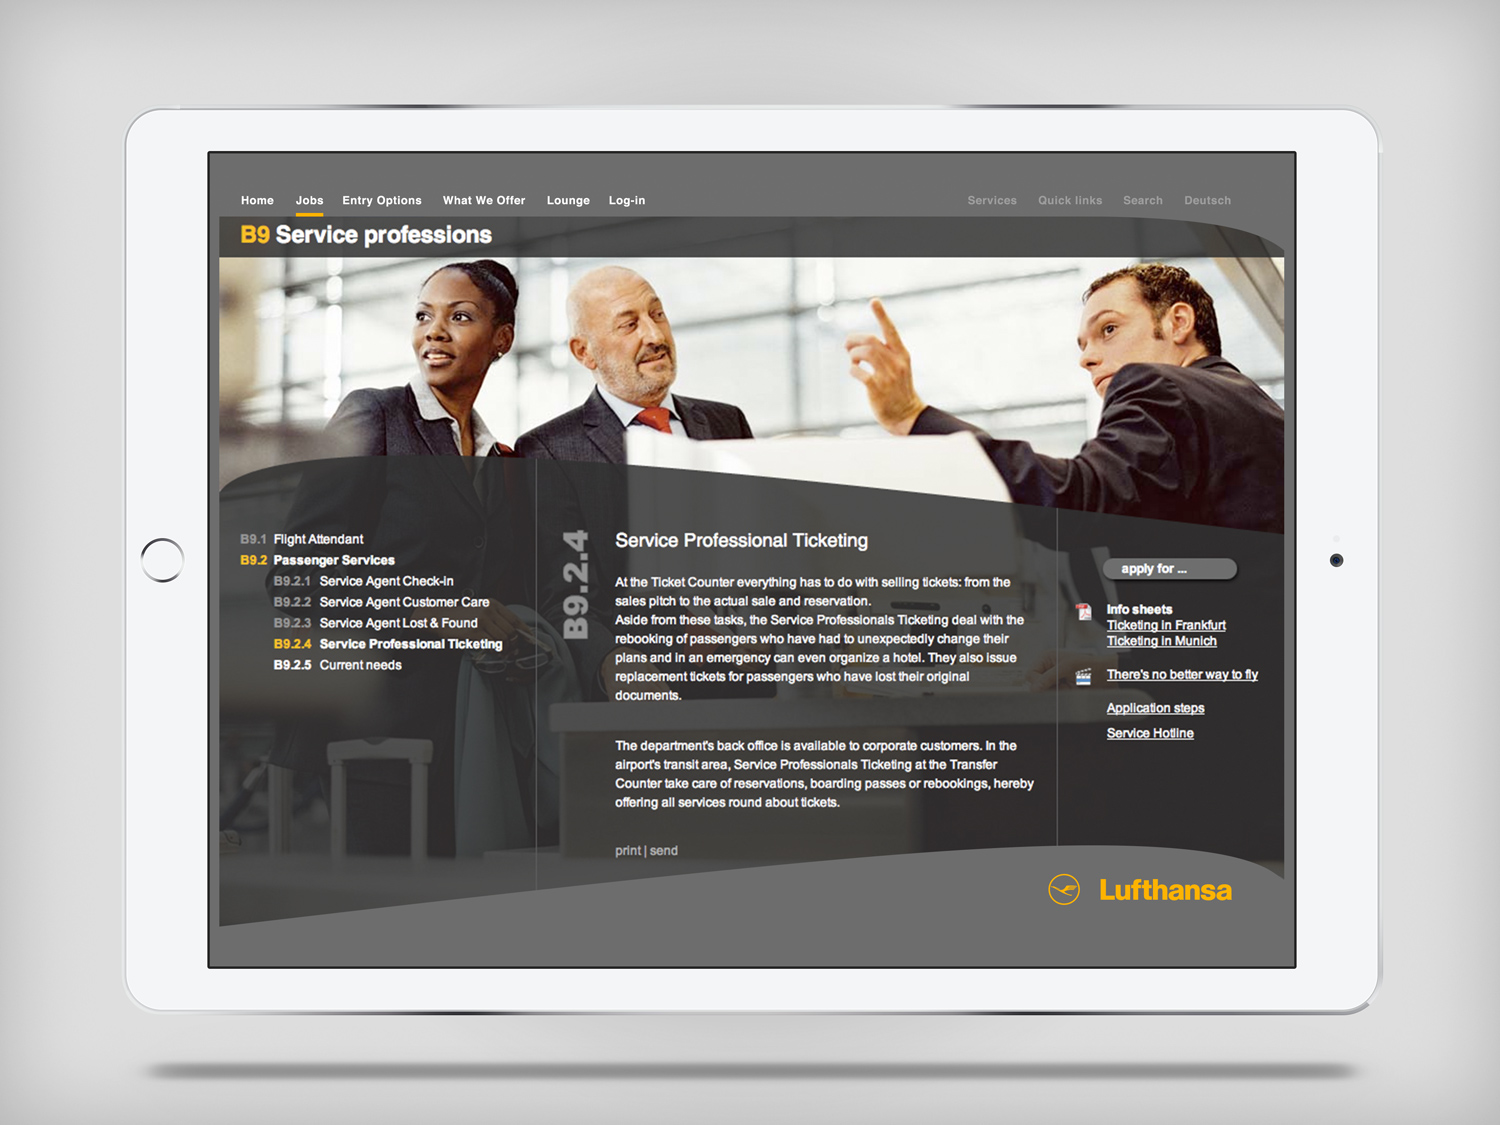 Lufthansa_iPad-Pro_B9Ticketing-a.jpg